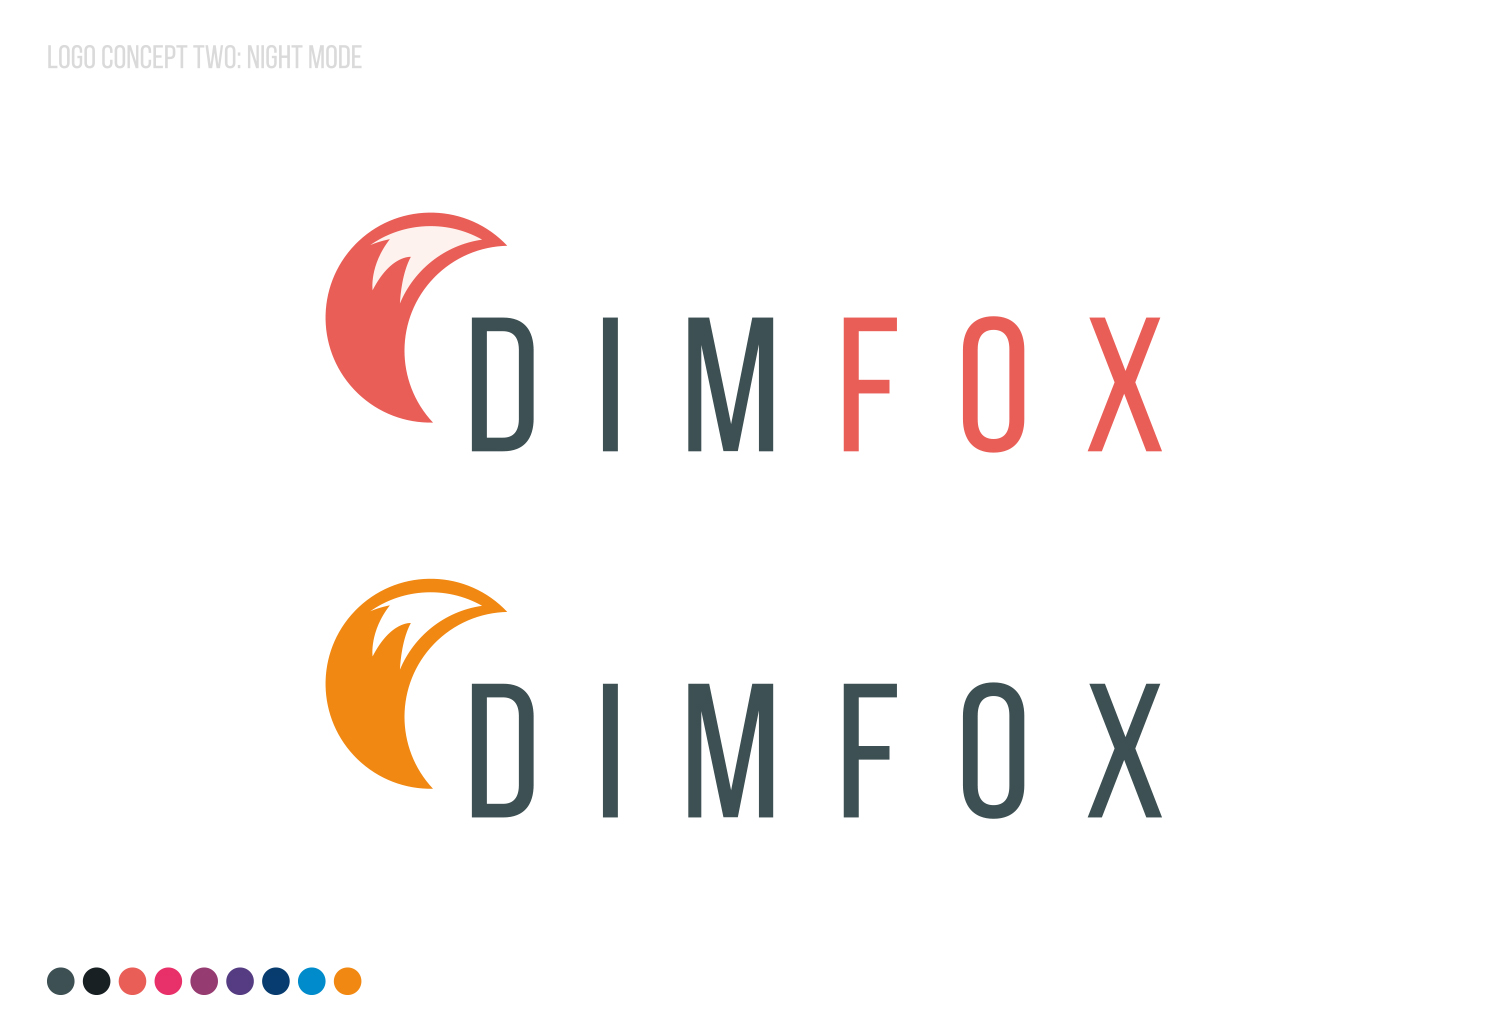 DIMFOX Logo Design -  Unused Concept 2